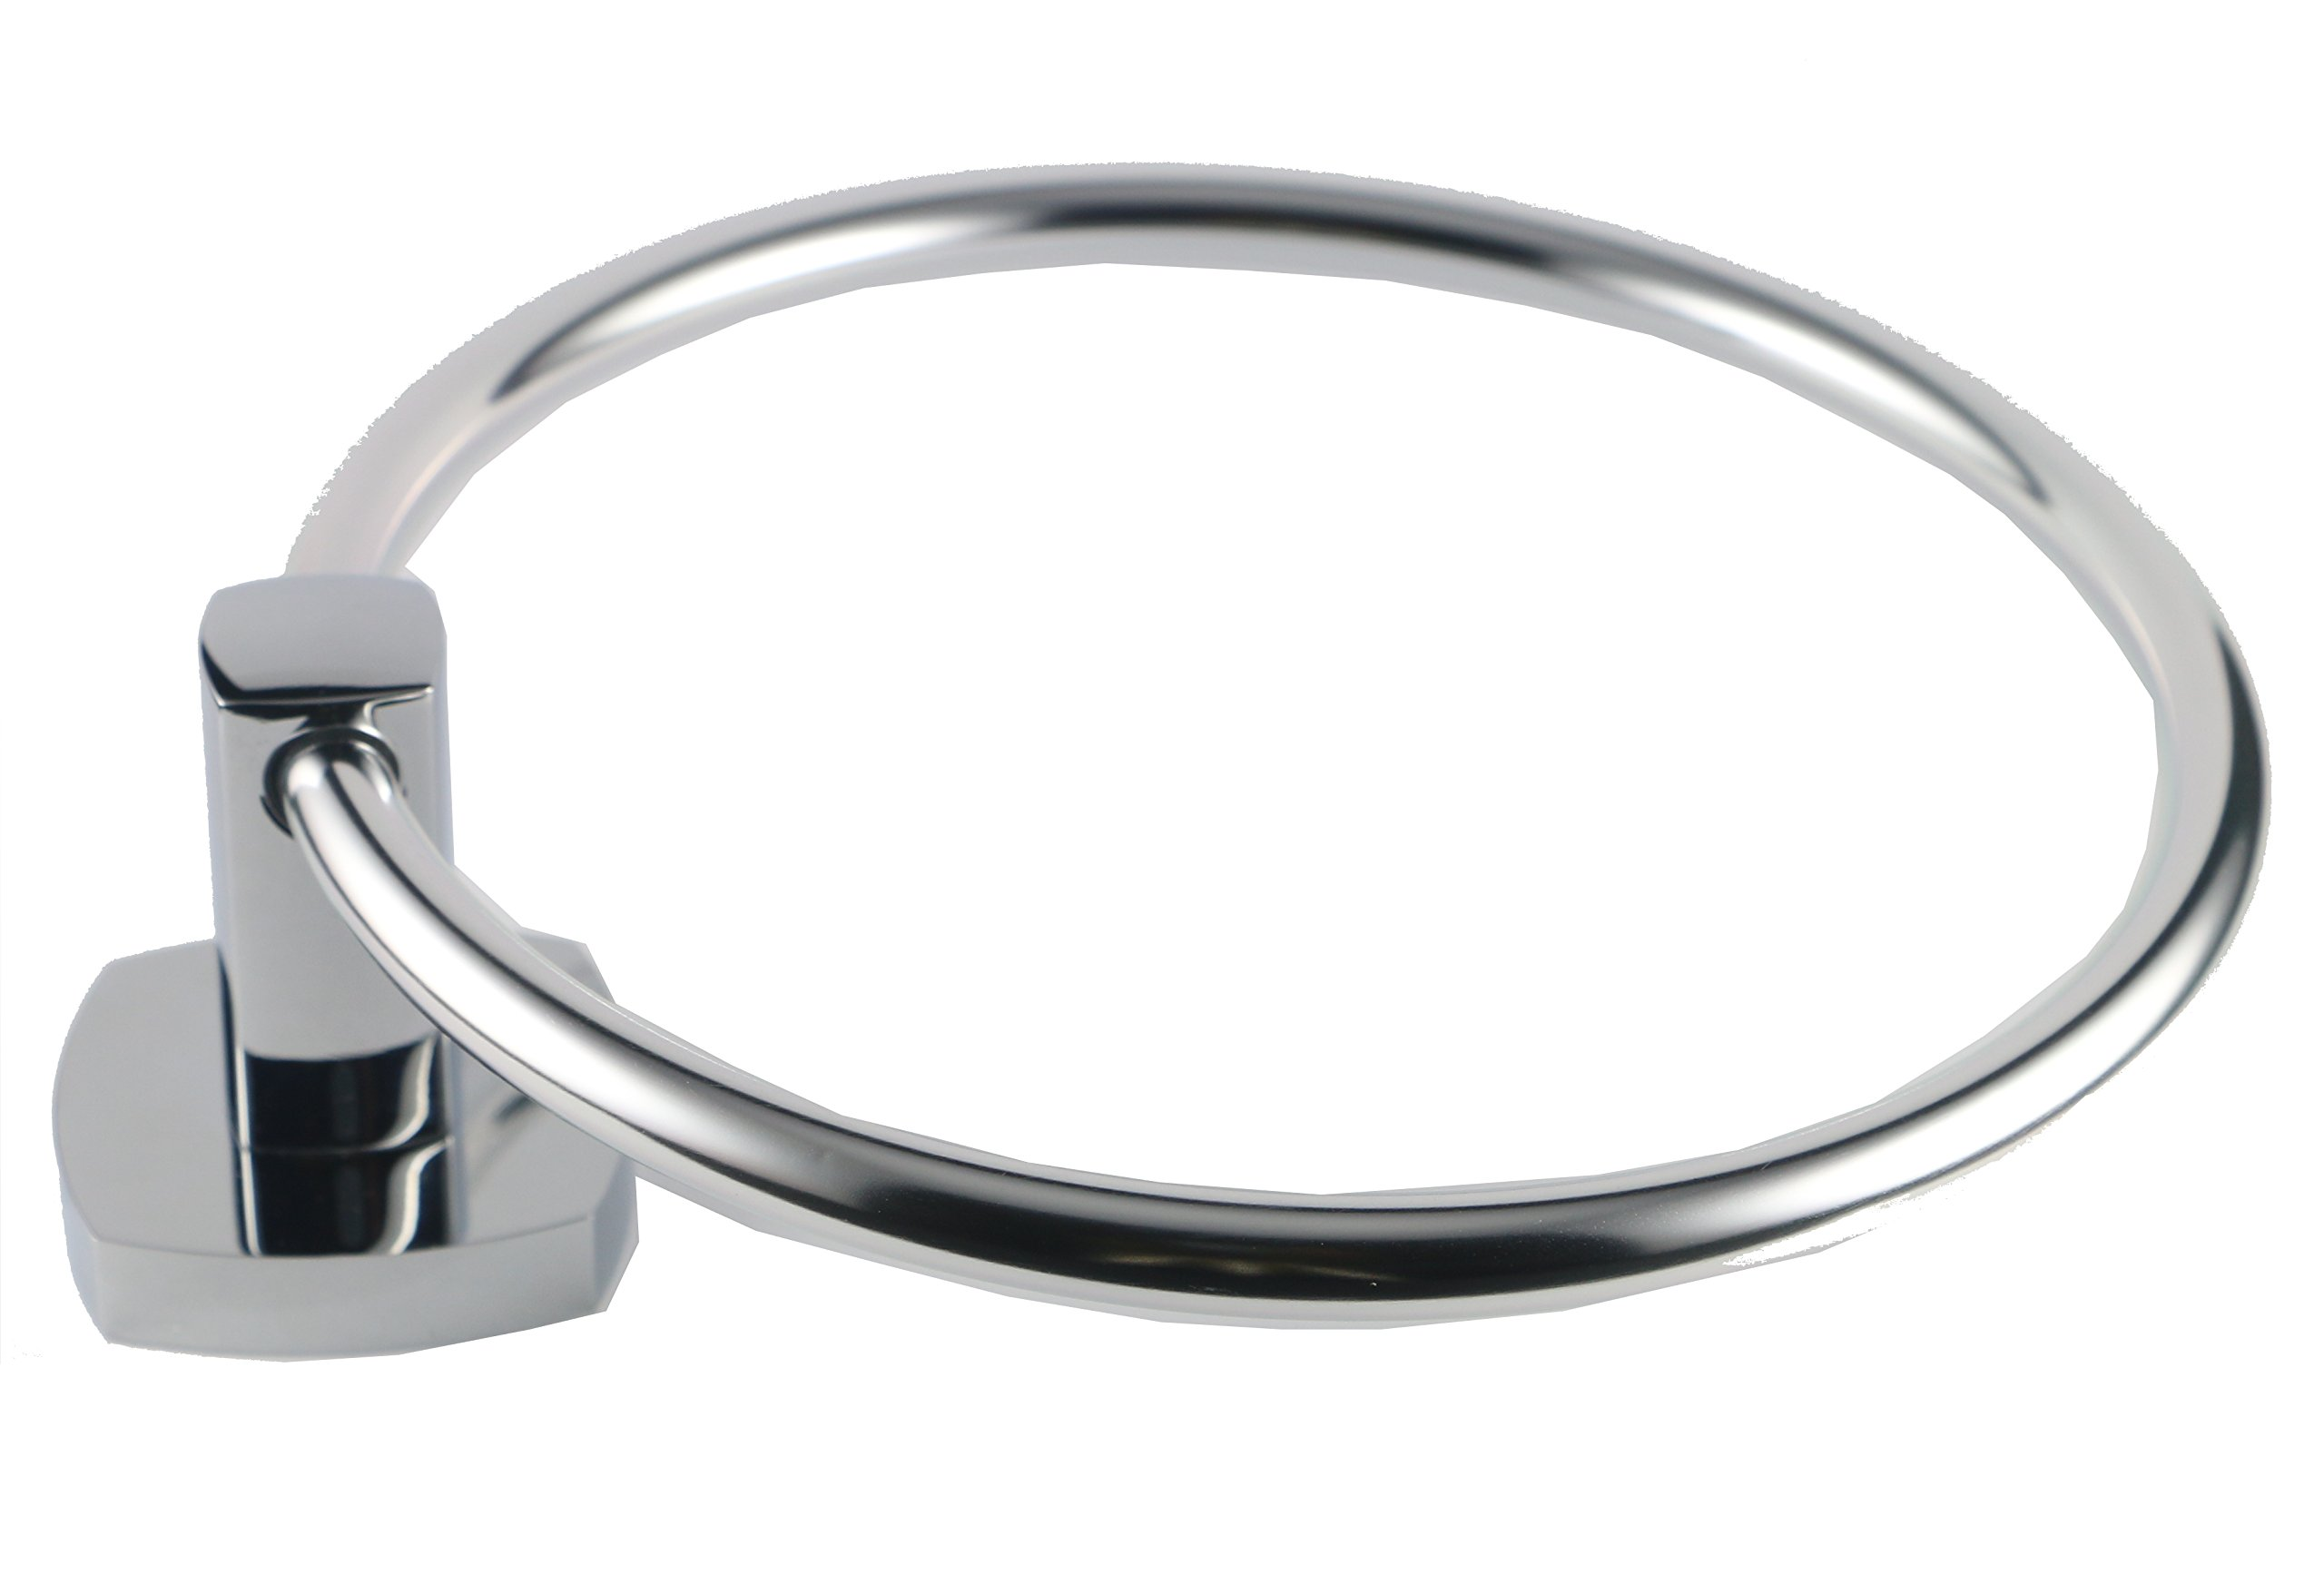 RN-Purity Purity Hand Towel Ring Stainless Steel,Bathroom Towel Ring, Chrome